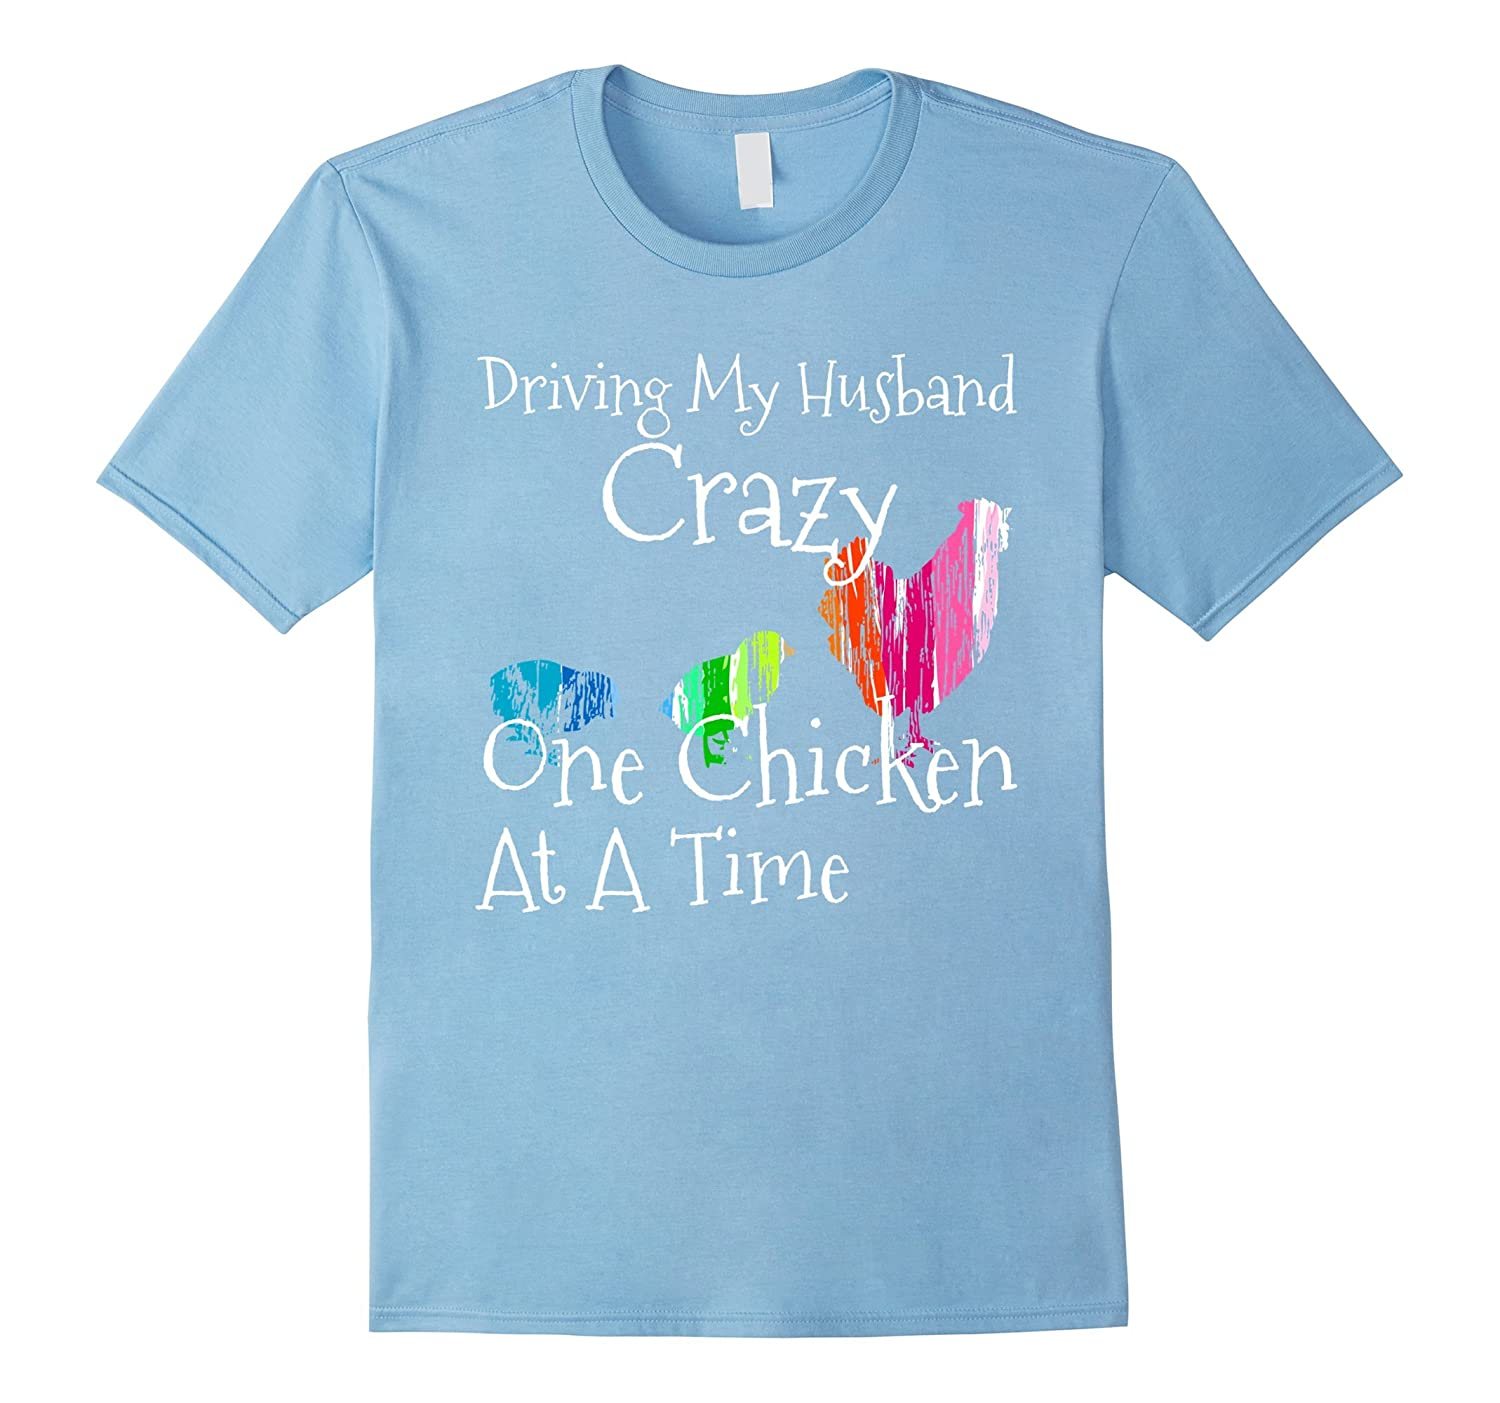 Driving My Husband Crazy, One Chicken At A Time Funny Shirt